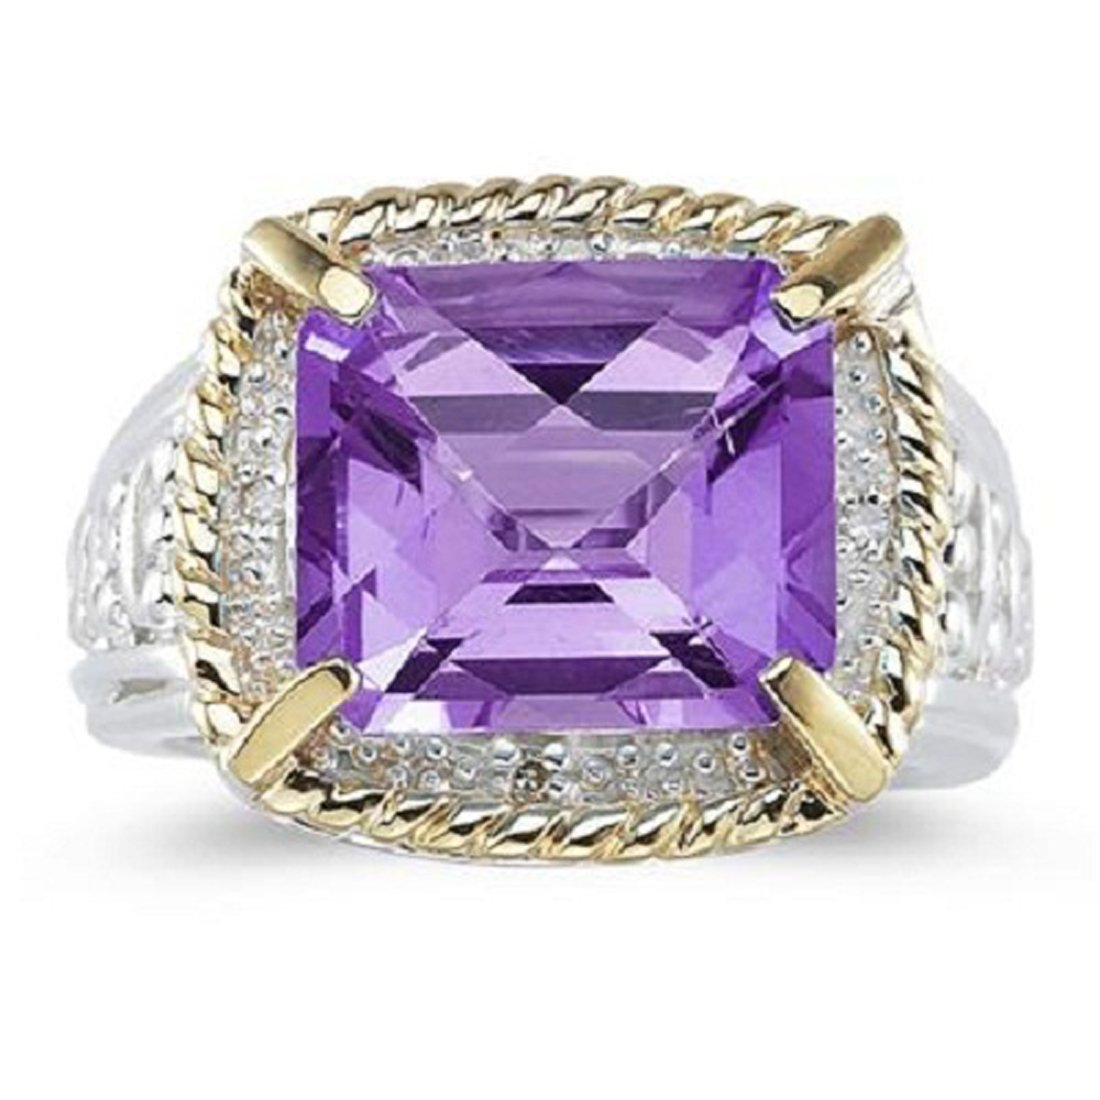 Smjewels 7.60 Ct Emerald Cut Purple Amethyst And Sim. Diamond Ring In 14K Two-Tone Plated by Smjewels (Image #1)